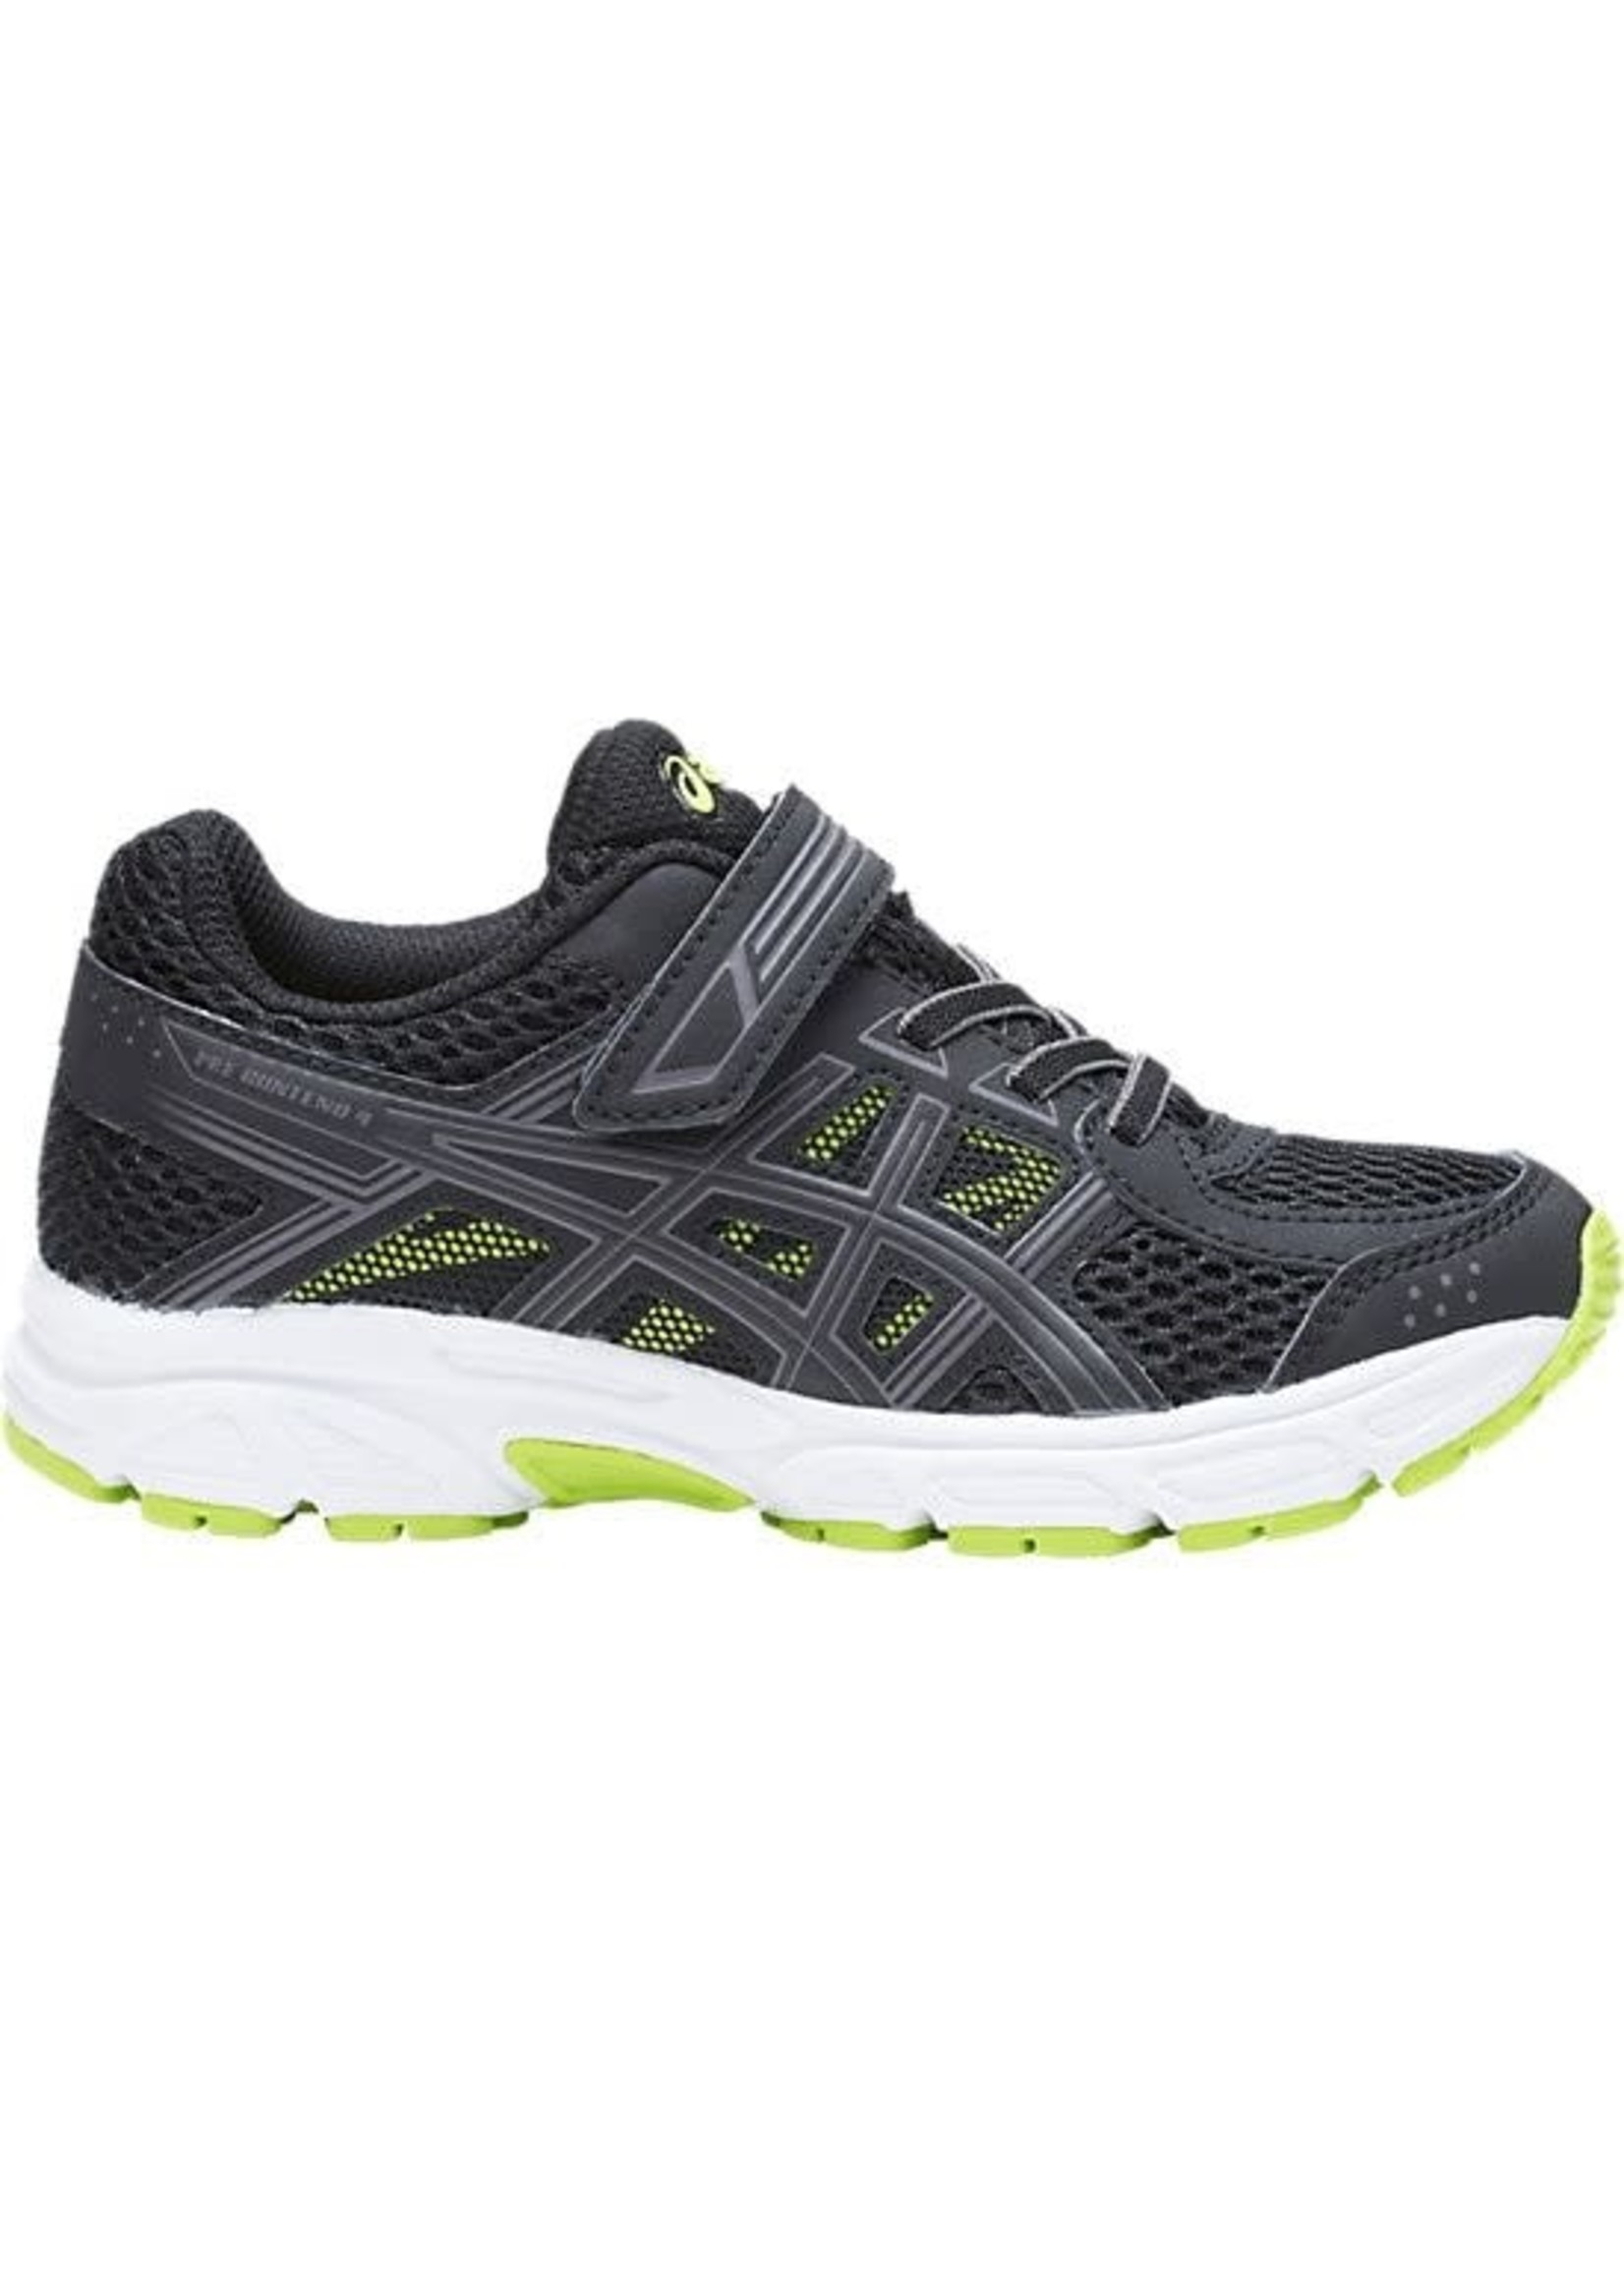 Asics PRE-CONTEND 4 PS C709N